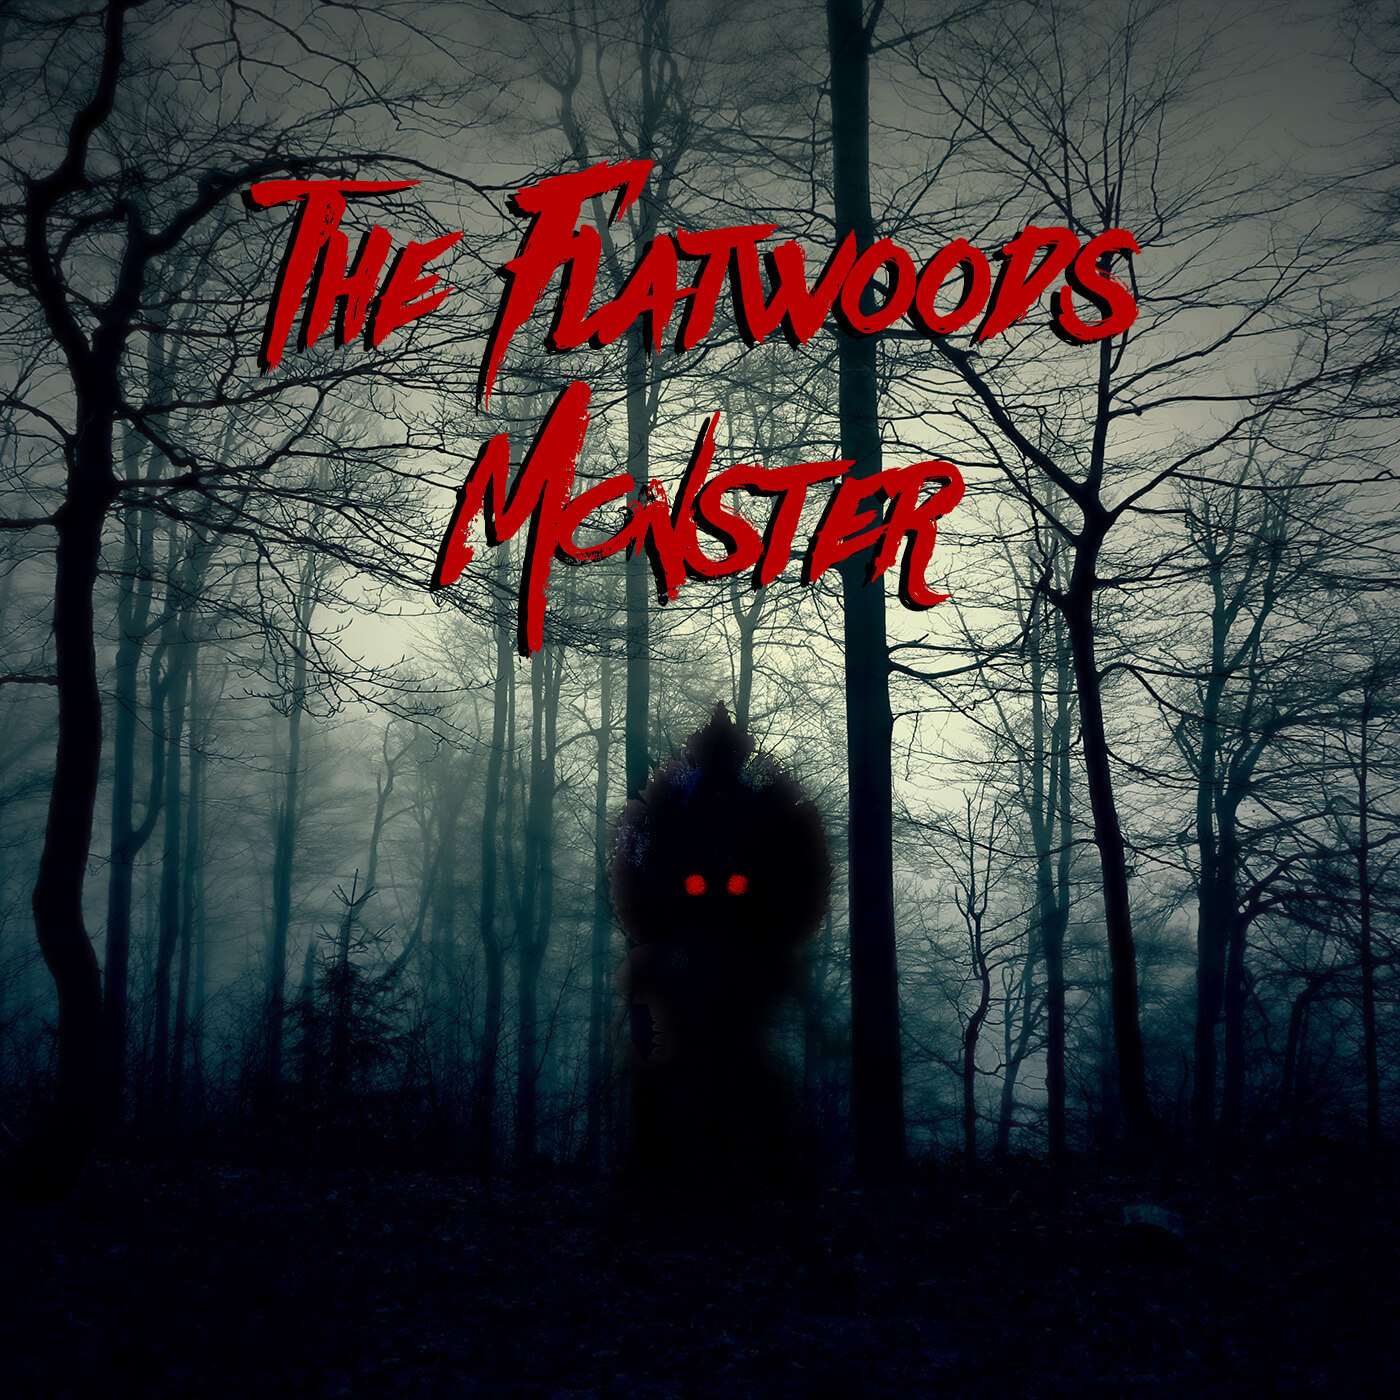 Episode 9: The Flatwoods Monster